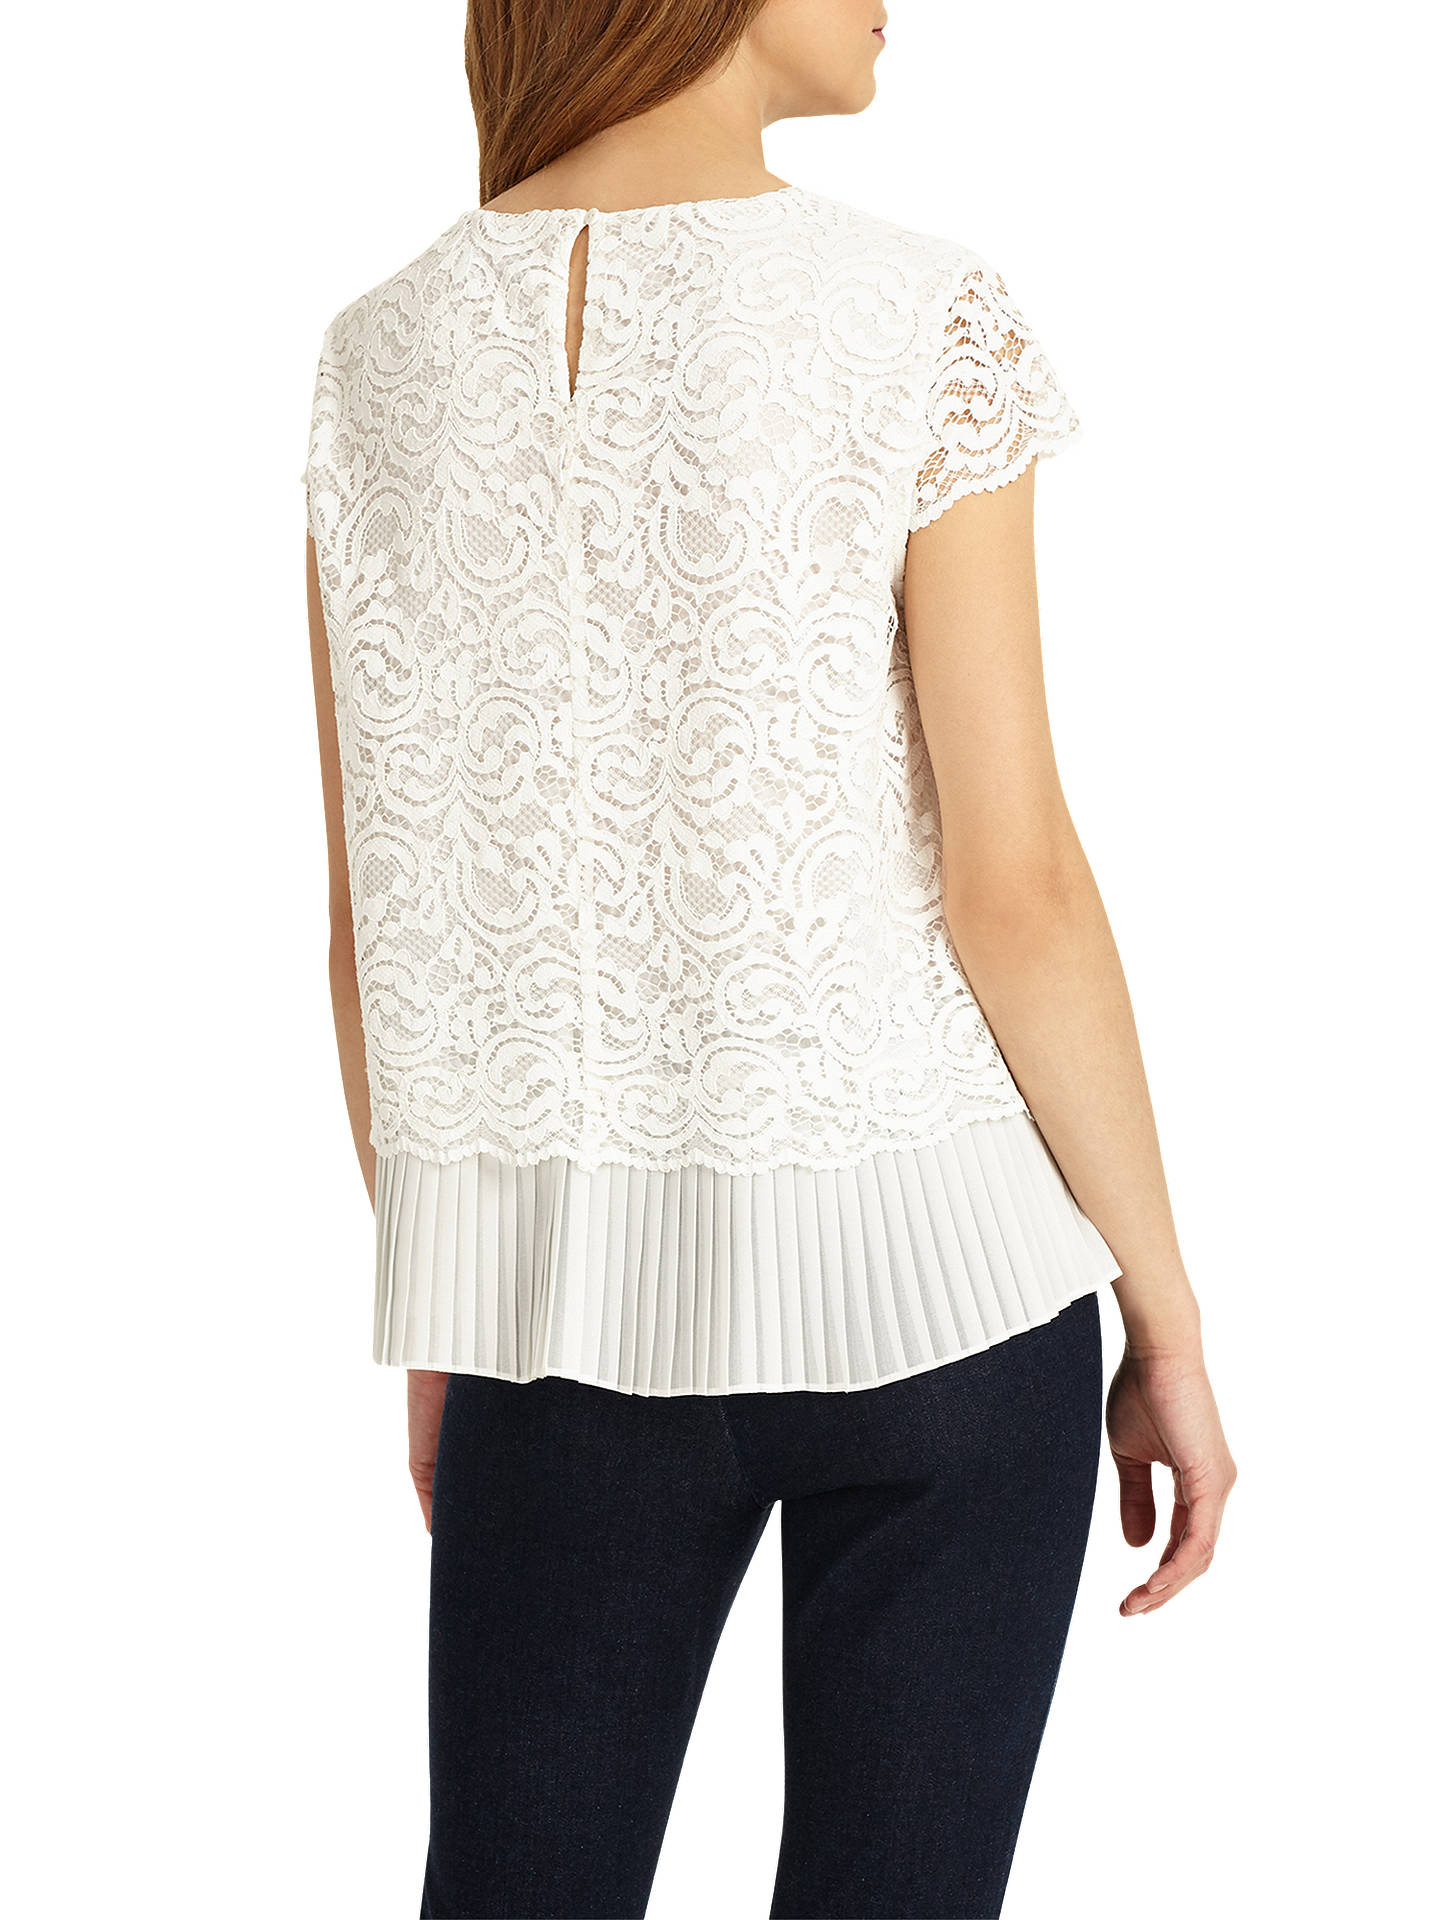 465de3443c3446 ... Buy Phase Eight Lexie Pleated Lace Blouse, Ivory, 8 Online at  johnlewis.com ...